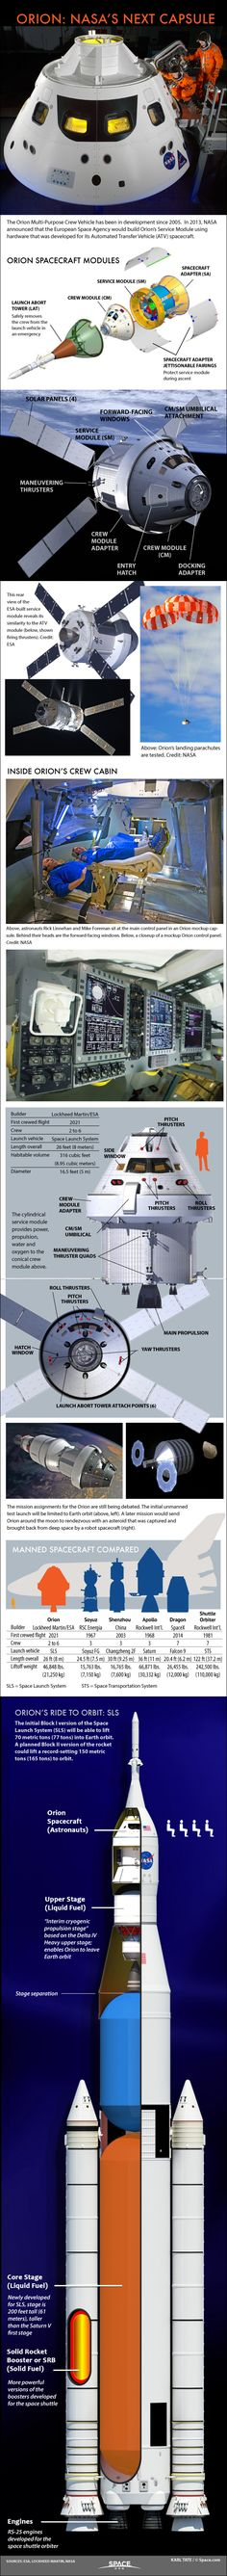 "ORION Explained"" NASA's Multi-Purpose Crew Vehicle- Details of the Orion four-person capsule that could carry crews to the Moon or an asteroid, beginning in 2021."